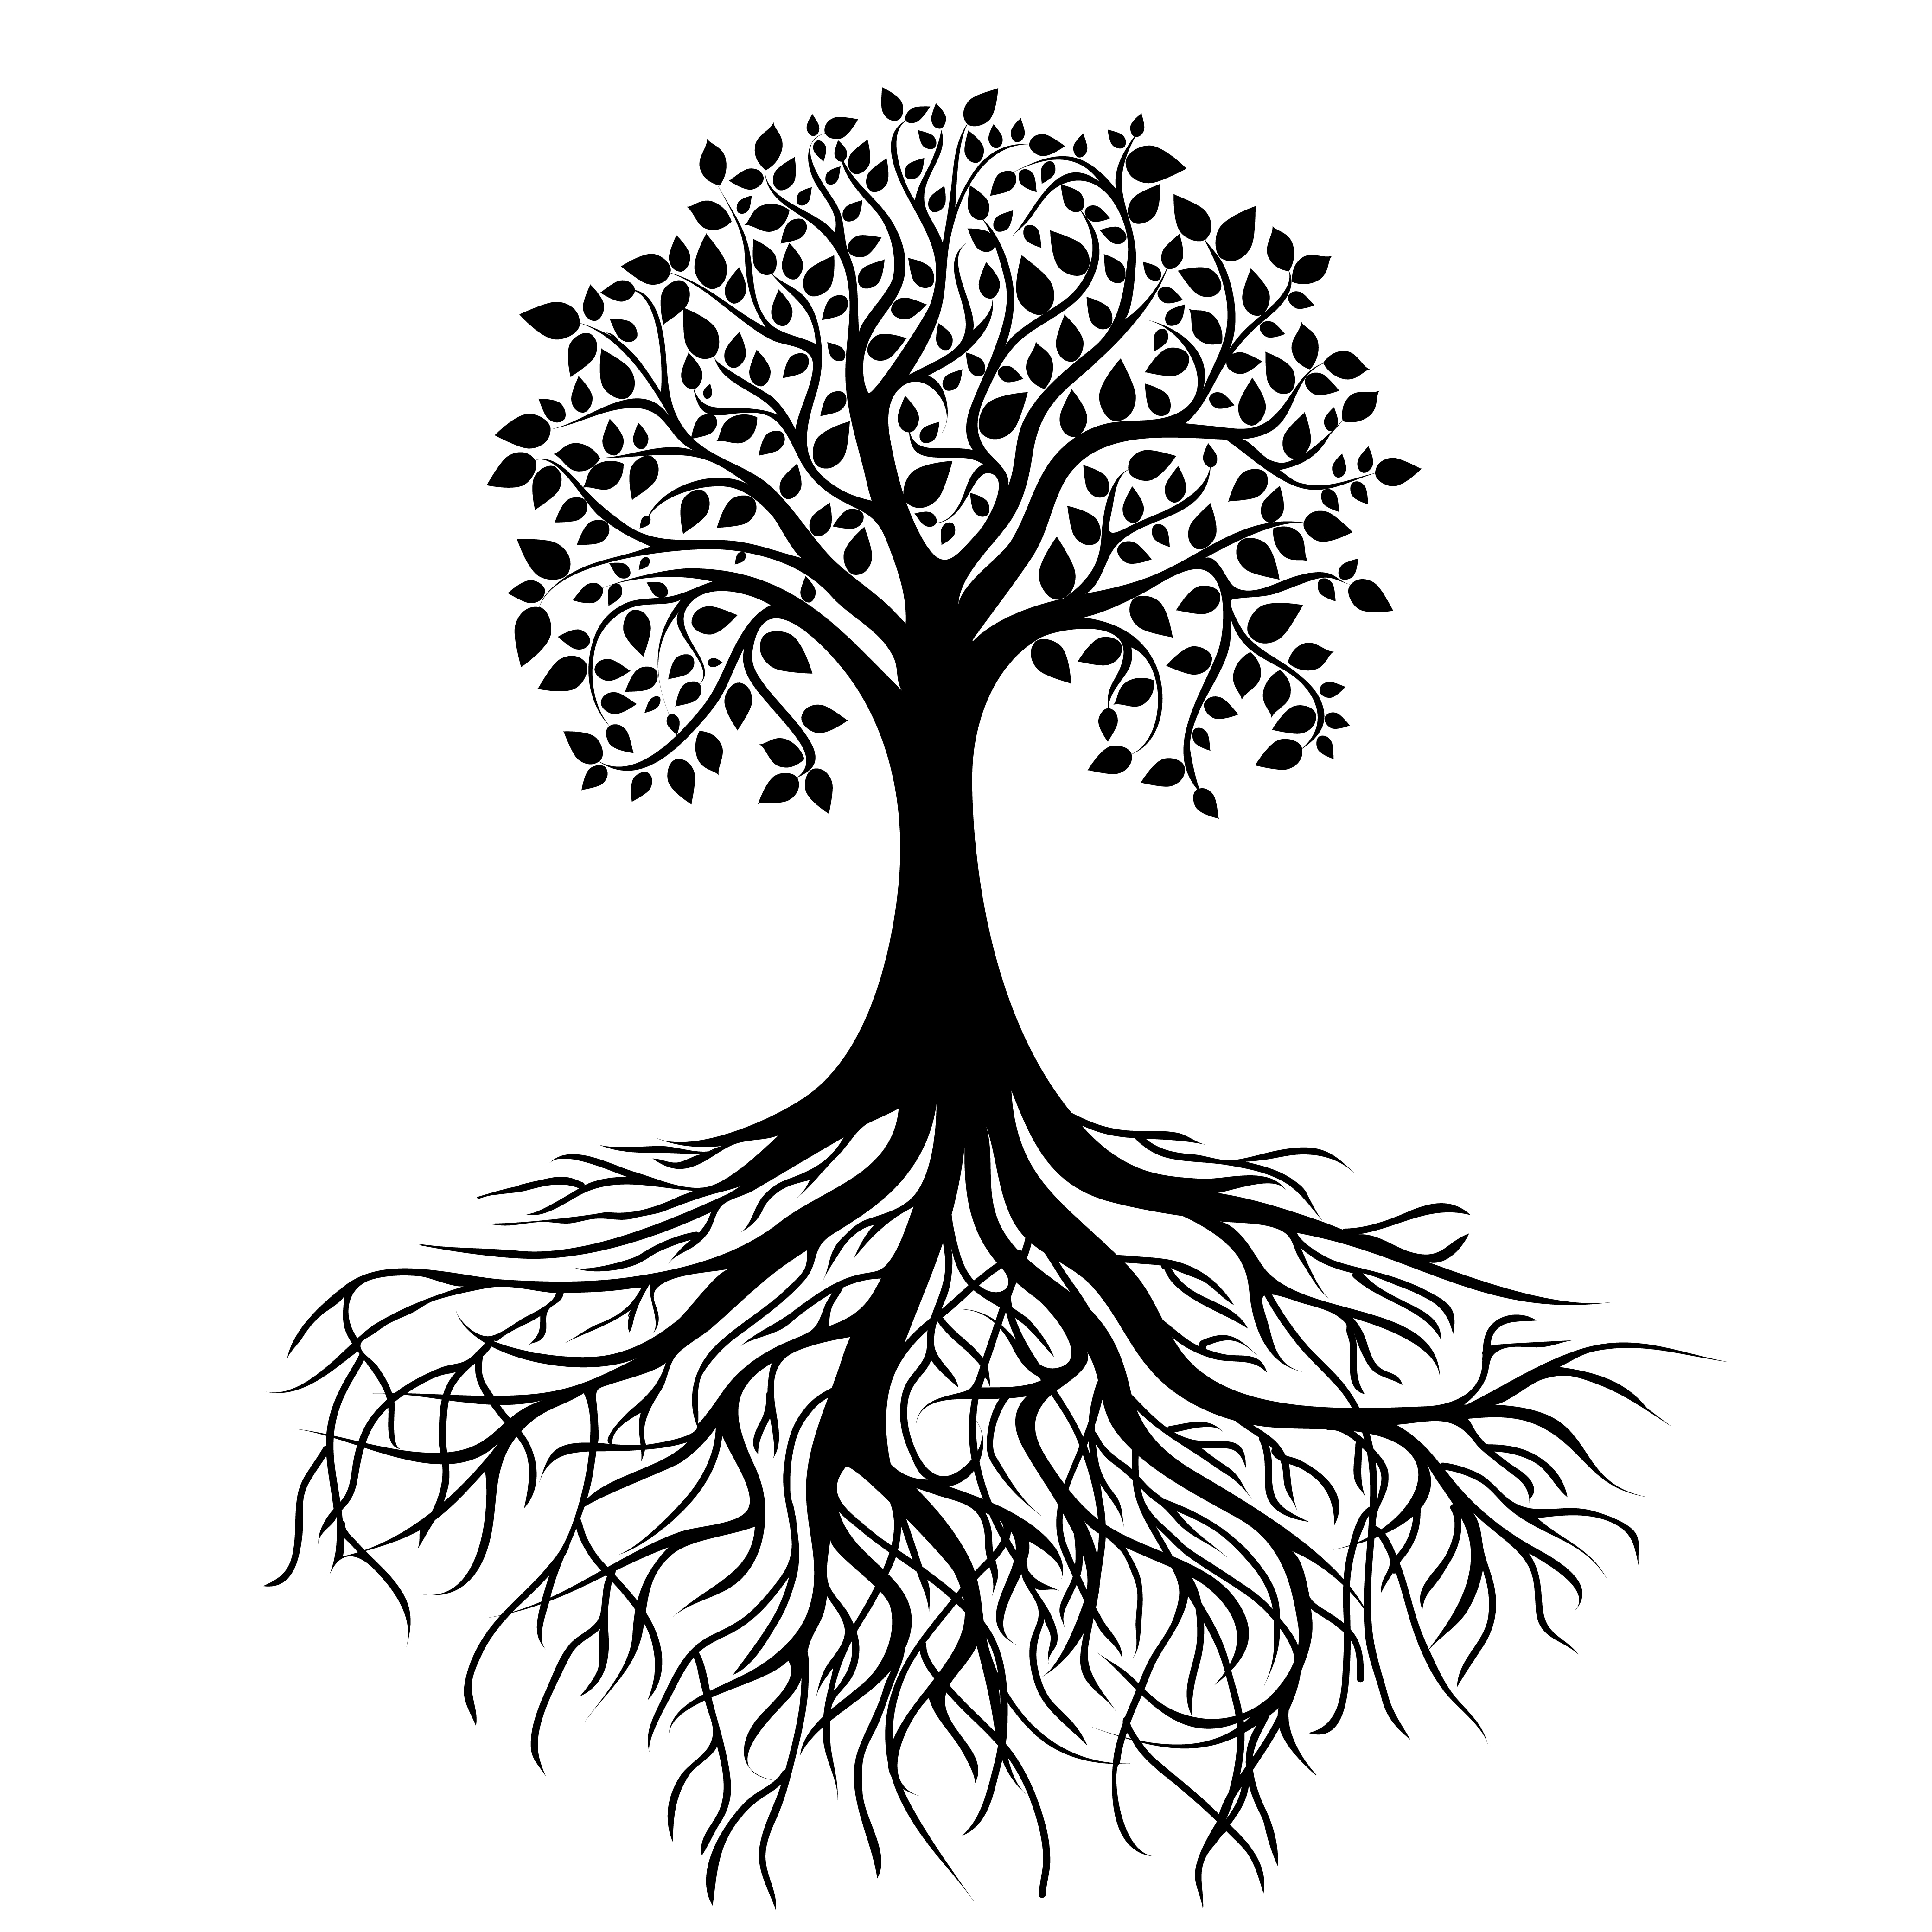 Drawn roots Tree The writing Roots Png